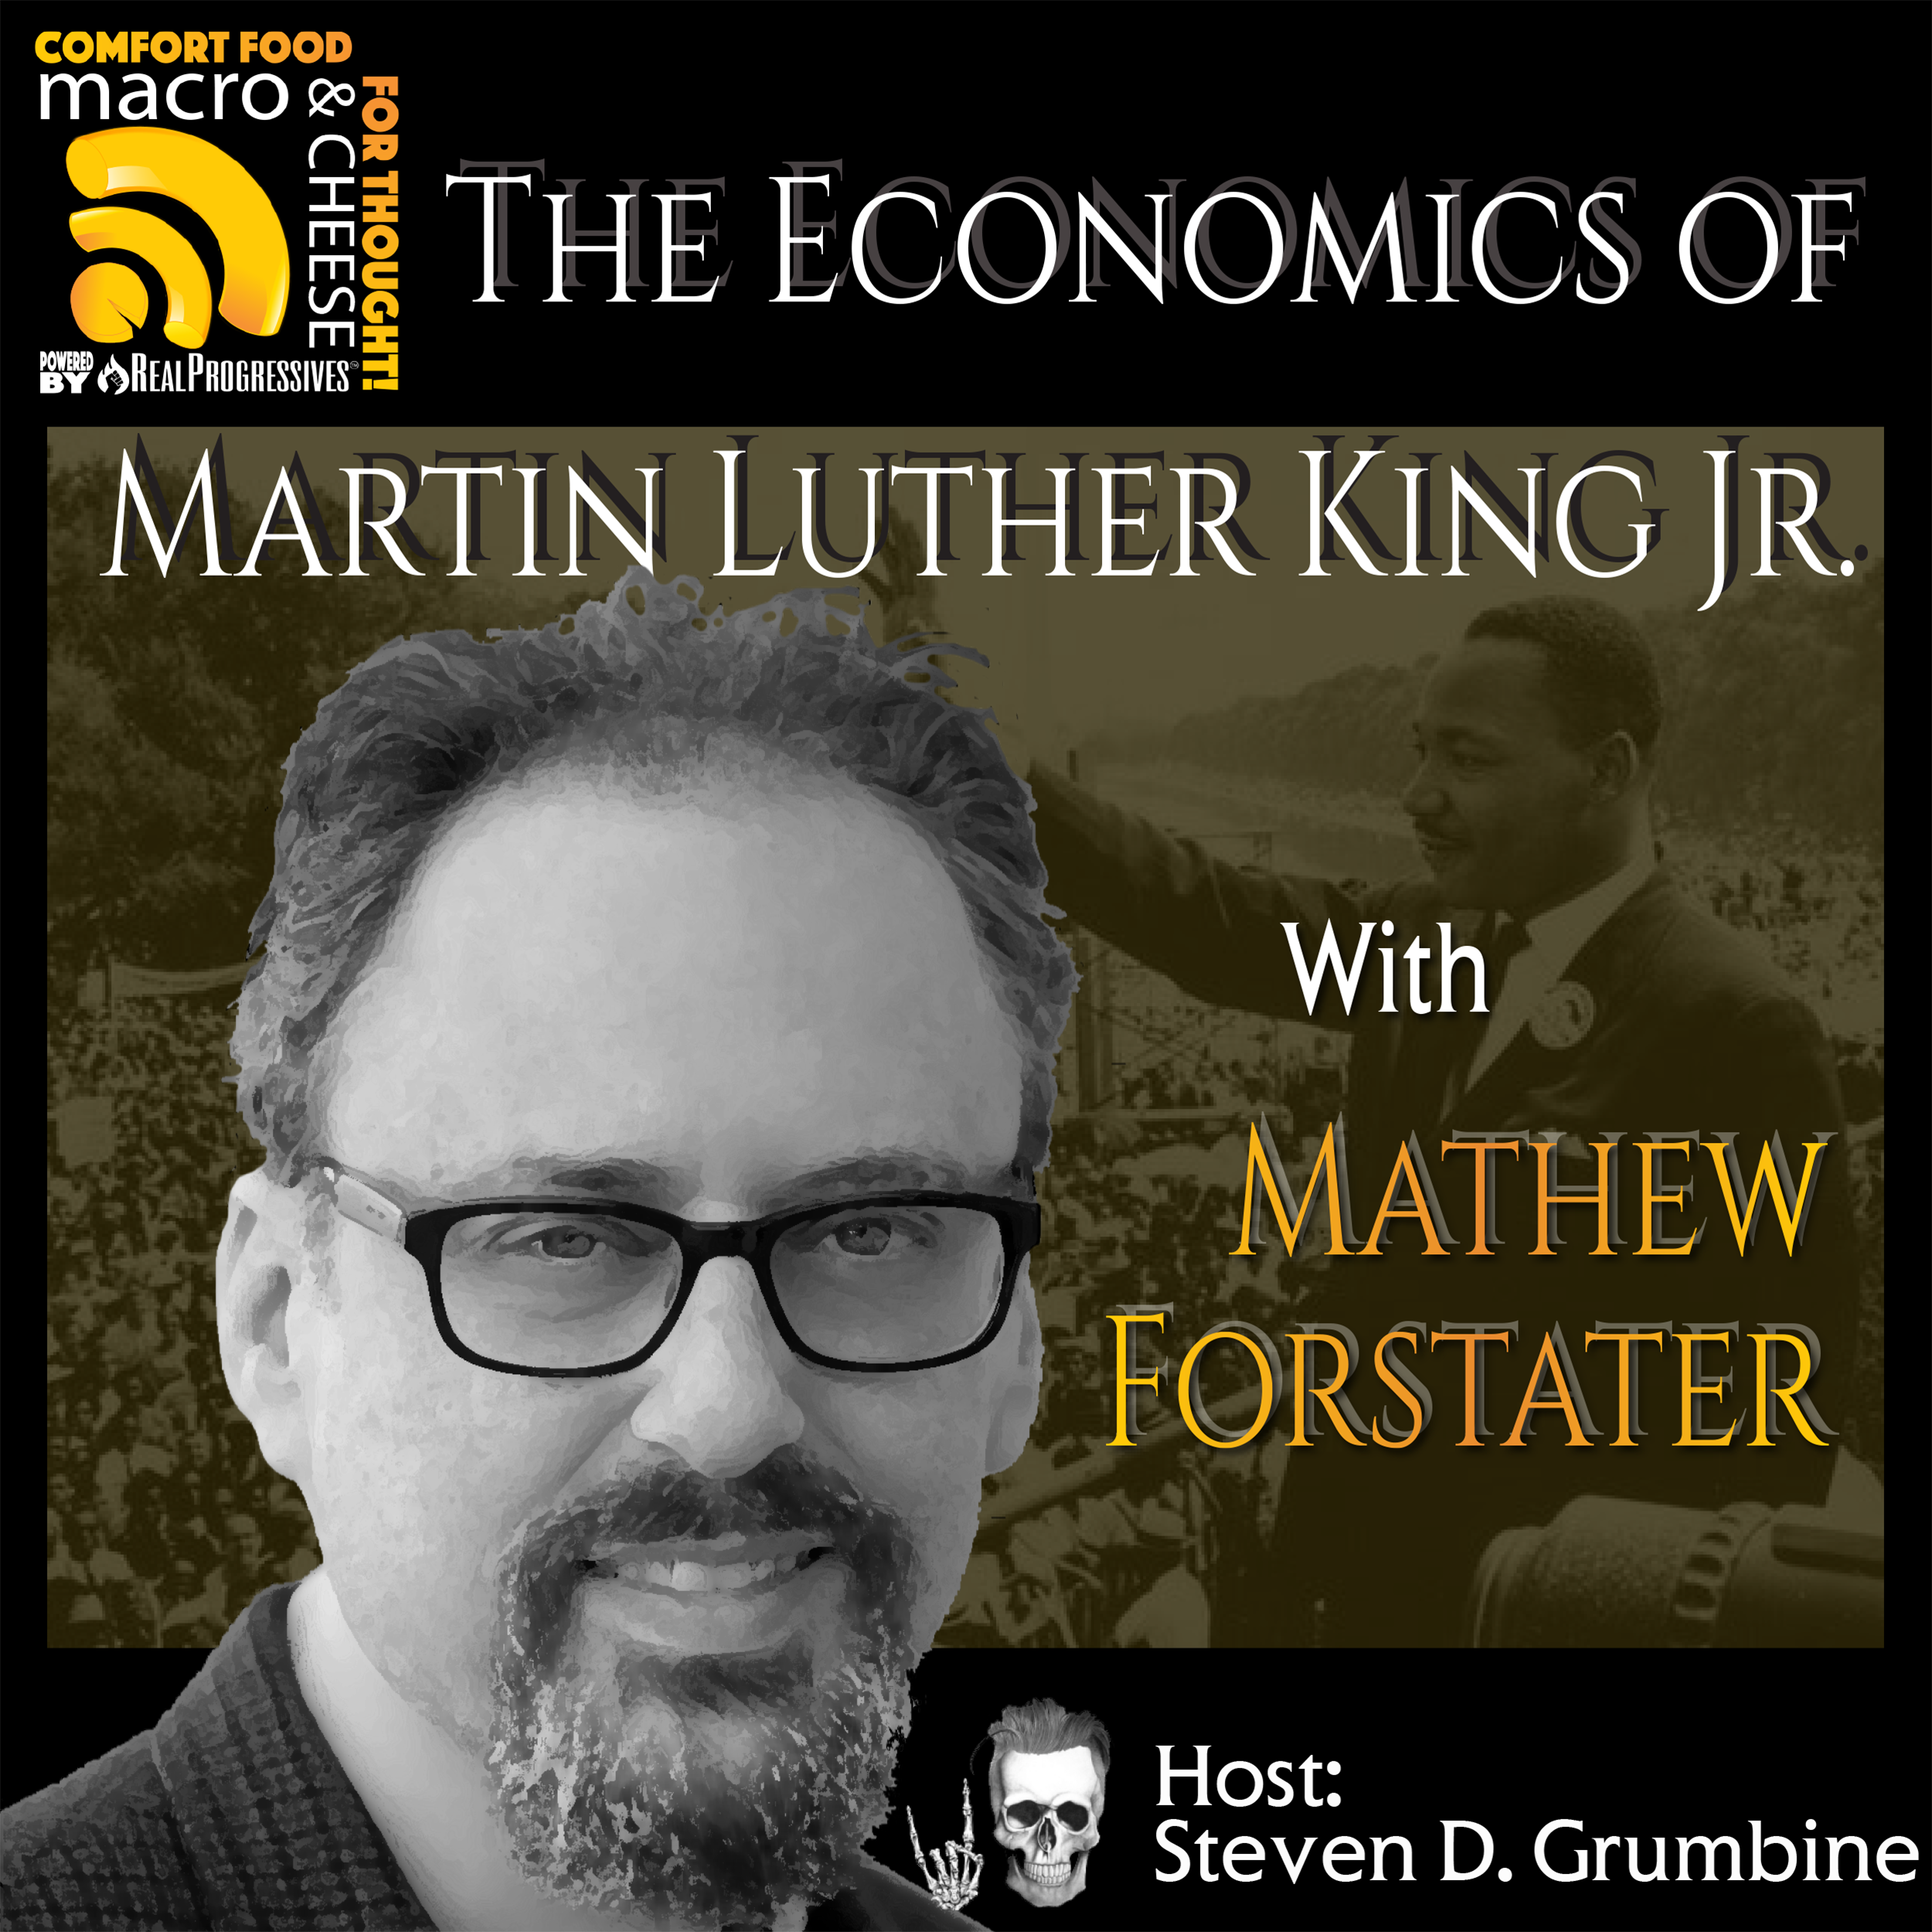 The Economics of Martin Luther King Jr. with Mathew Forstater